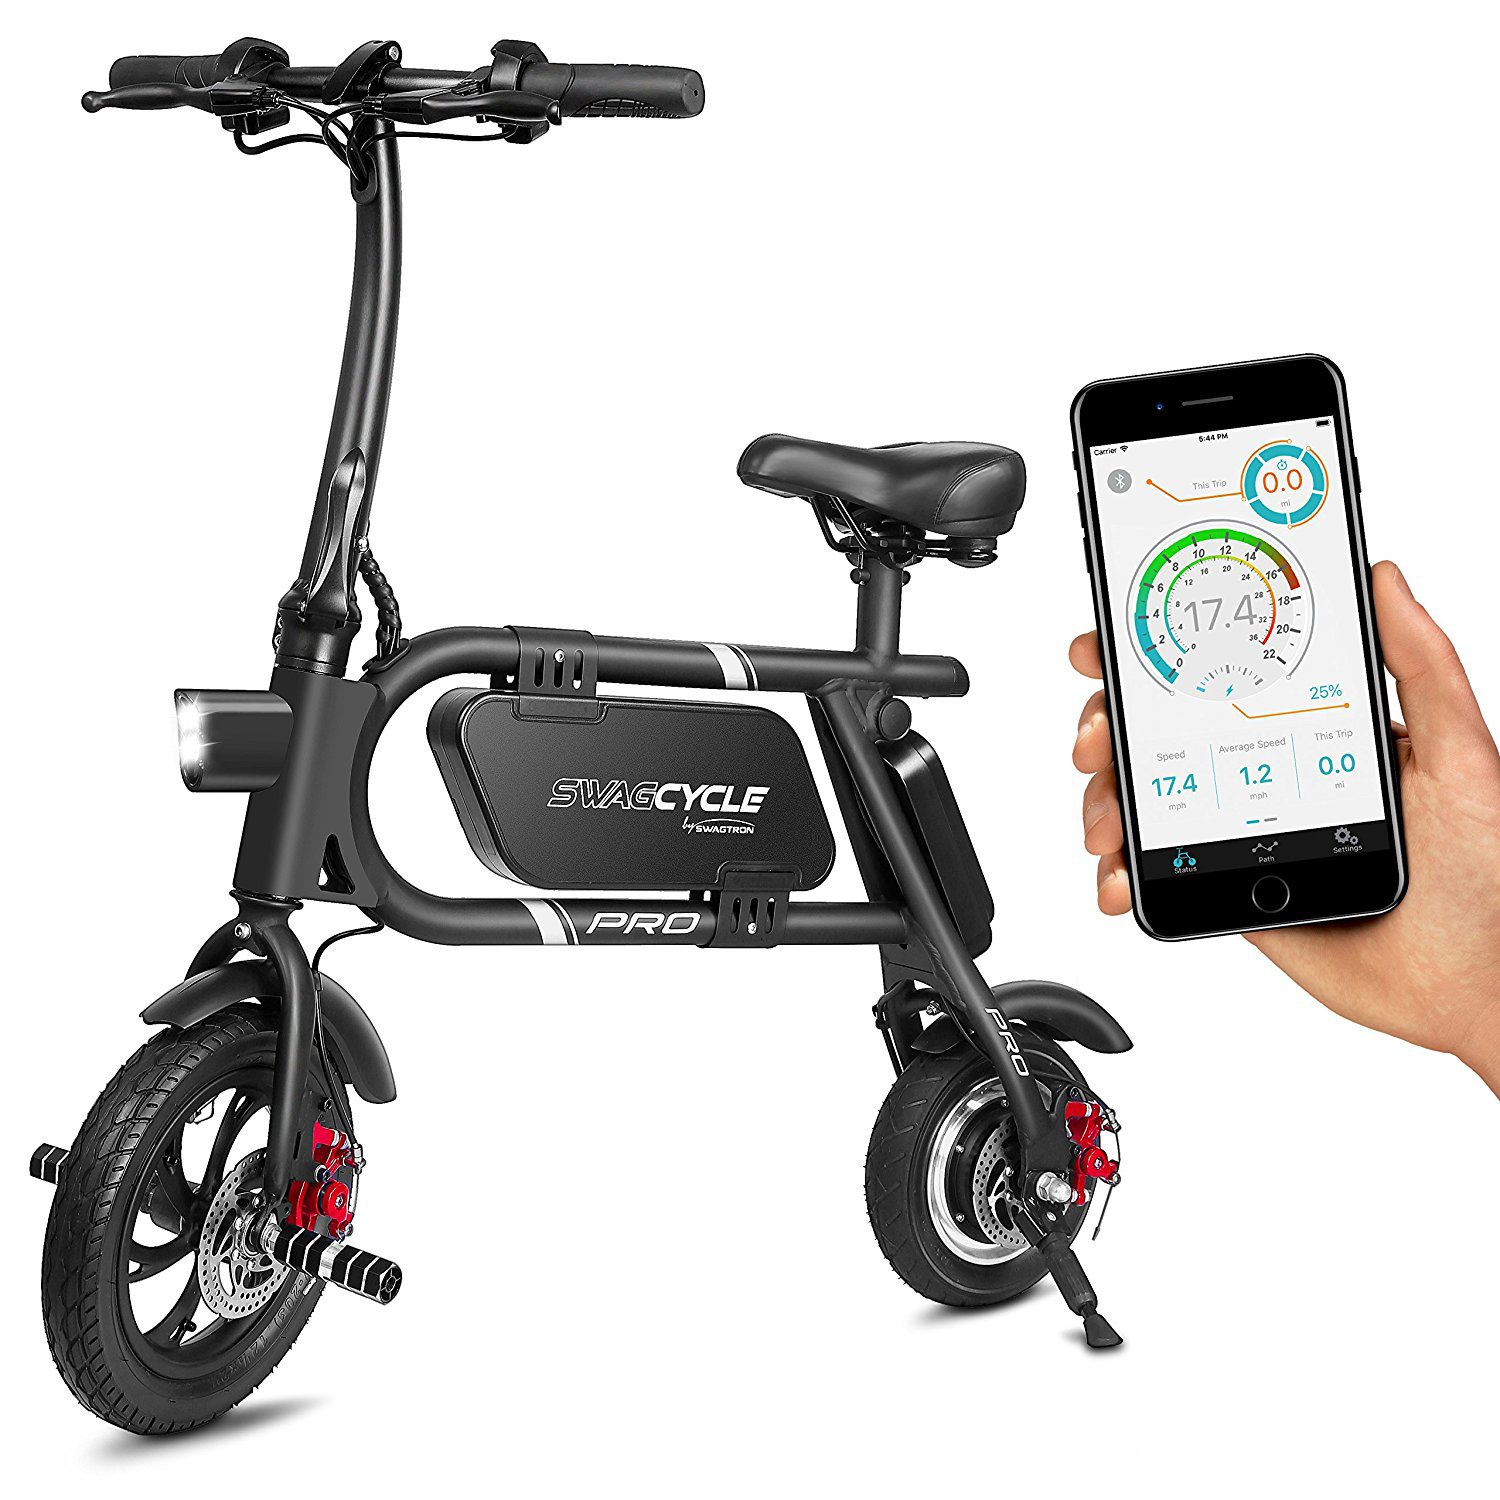 swagcycle pro folding electric bike pedal free and app. Black Bedroom Furniture Sets. Home Design Ideas